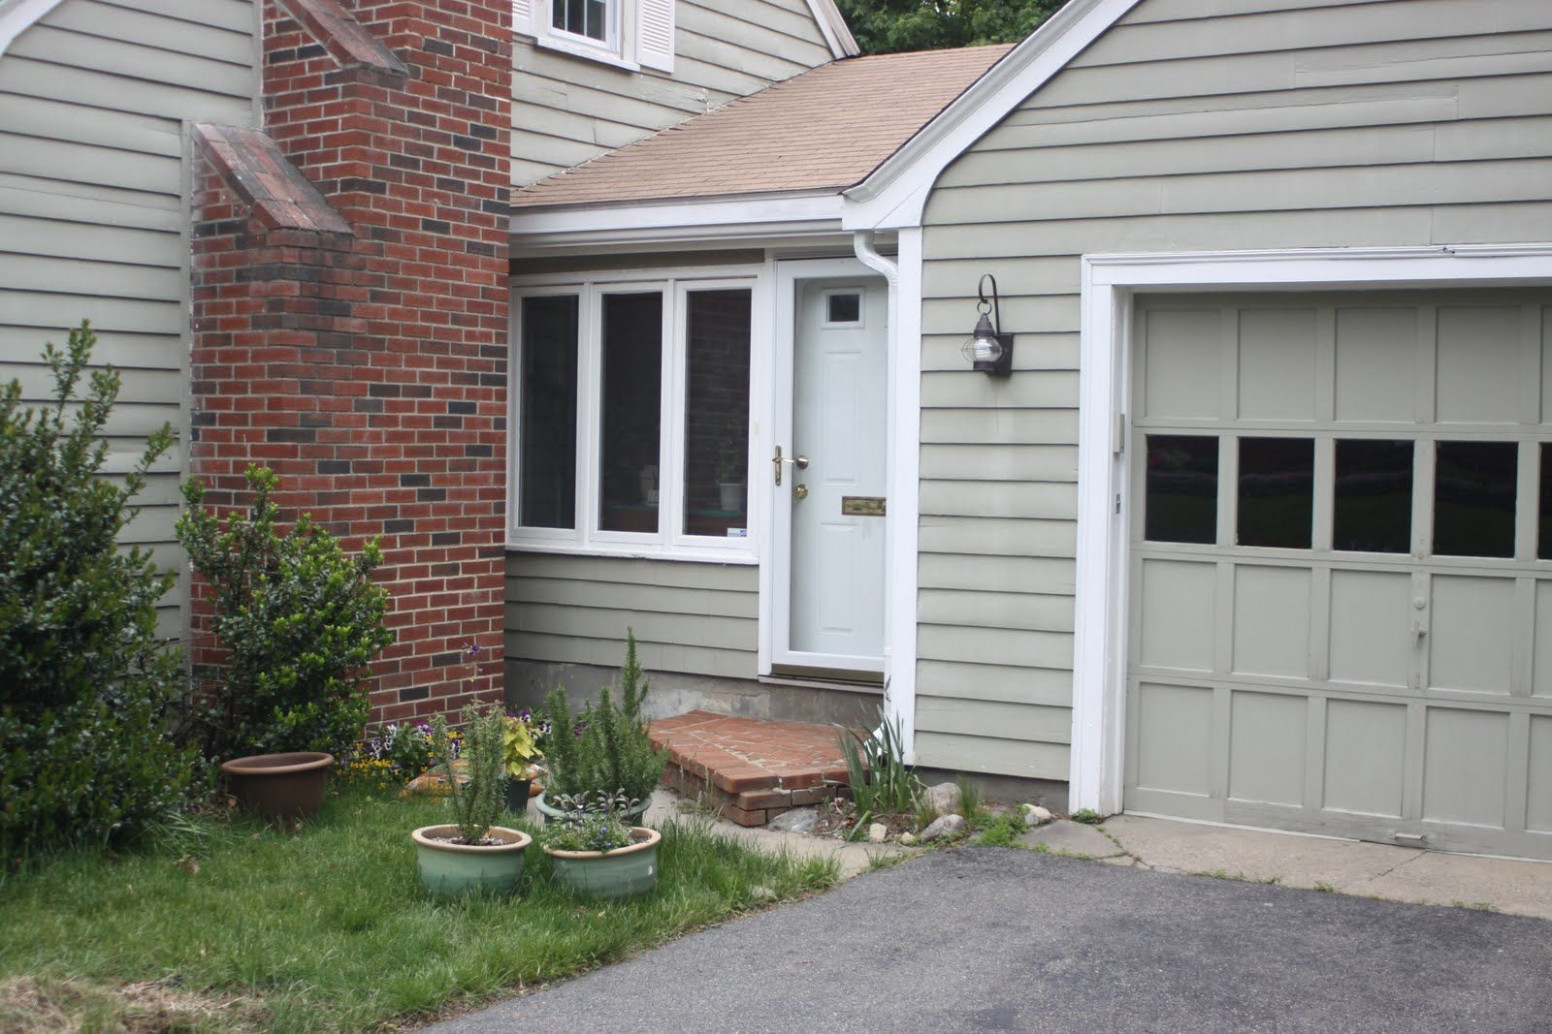 Carport Designs Attached To House New Garage With Breezeway ..